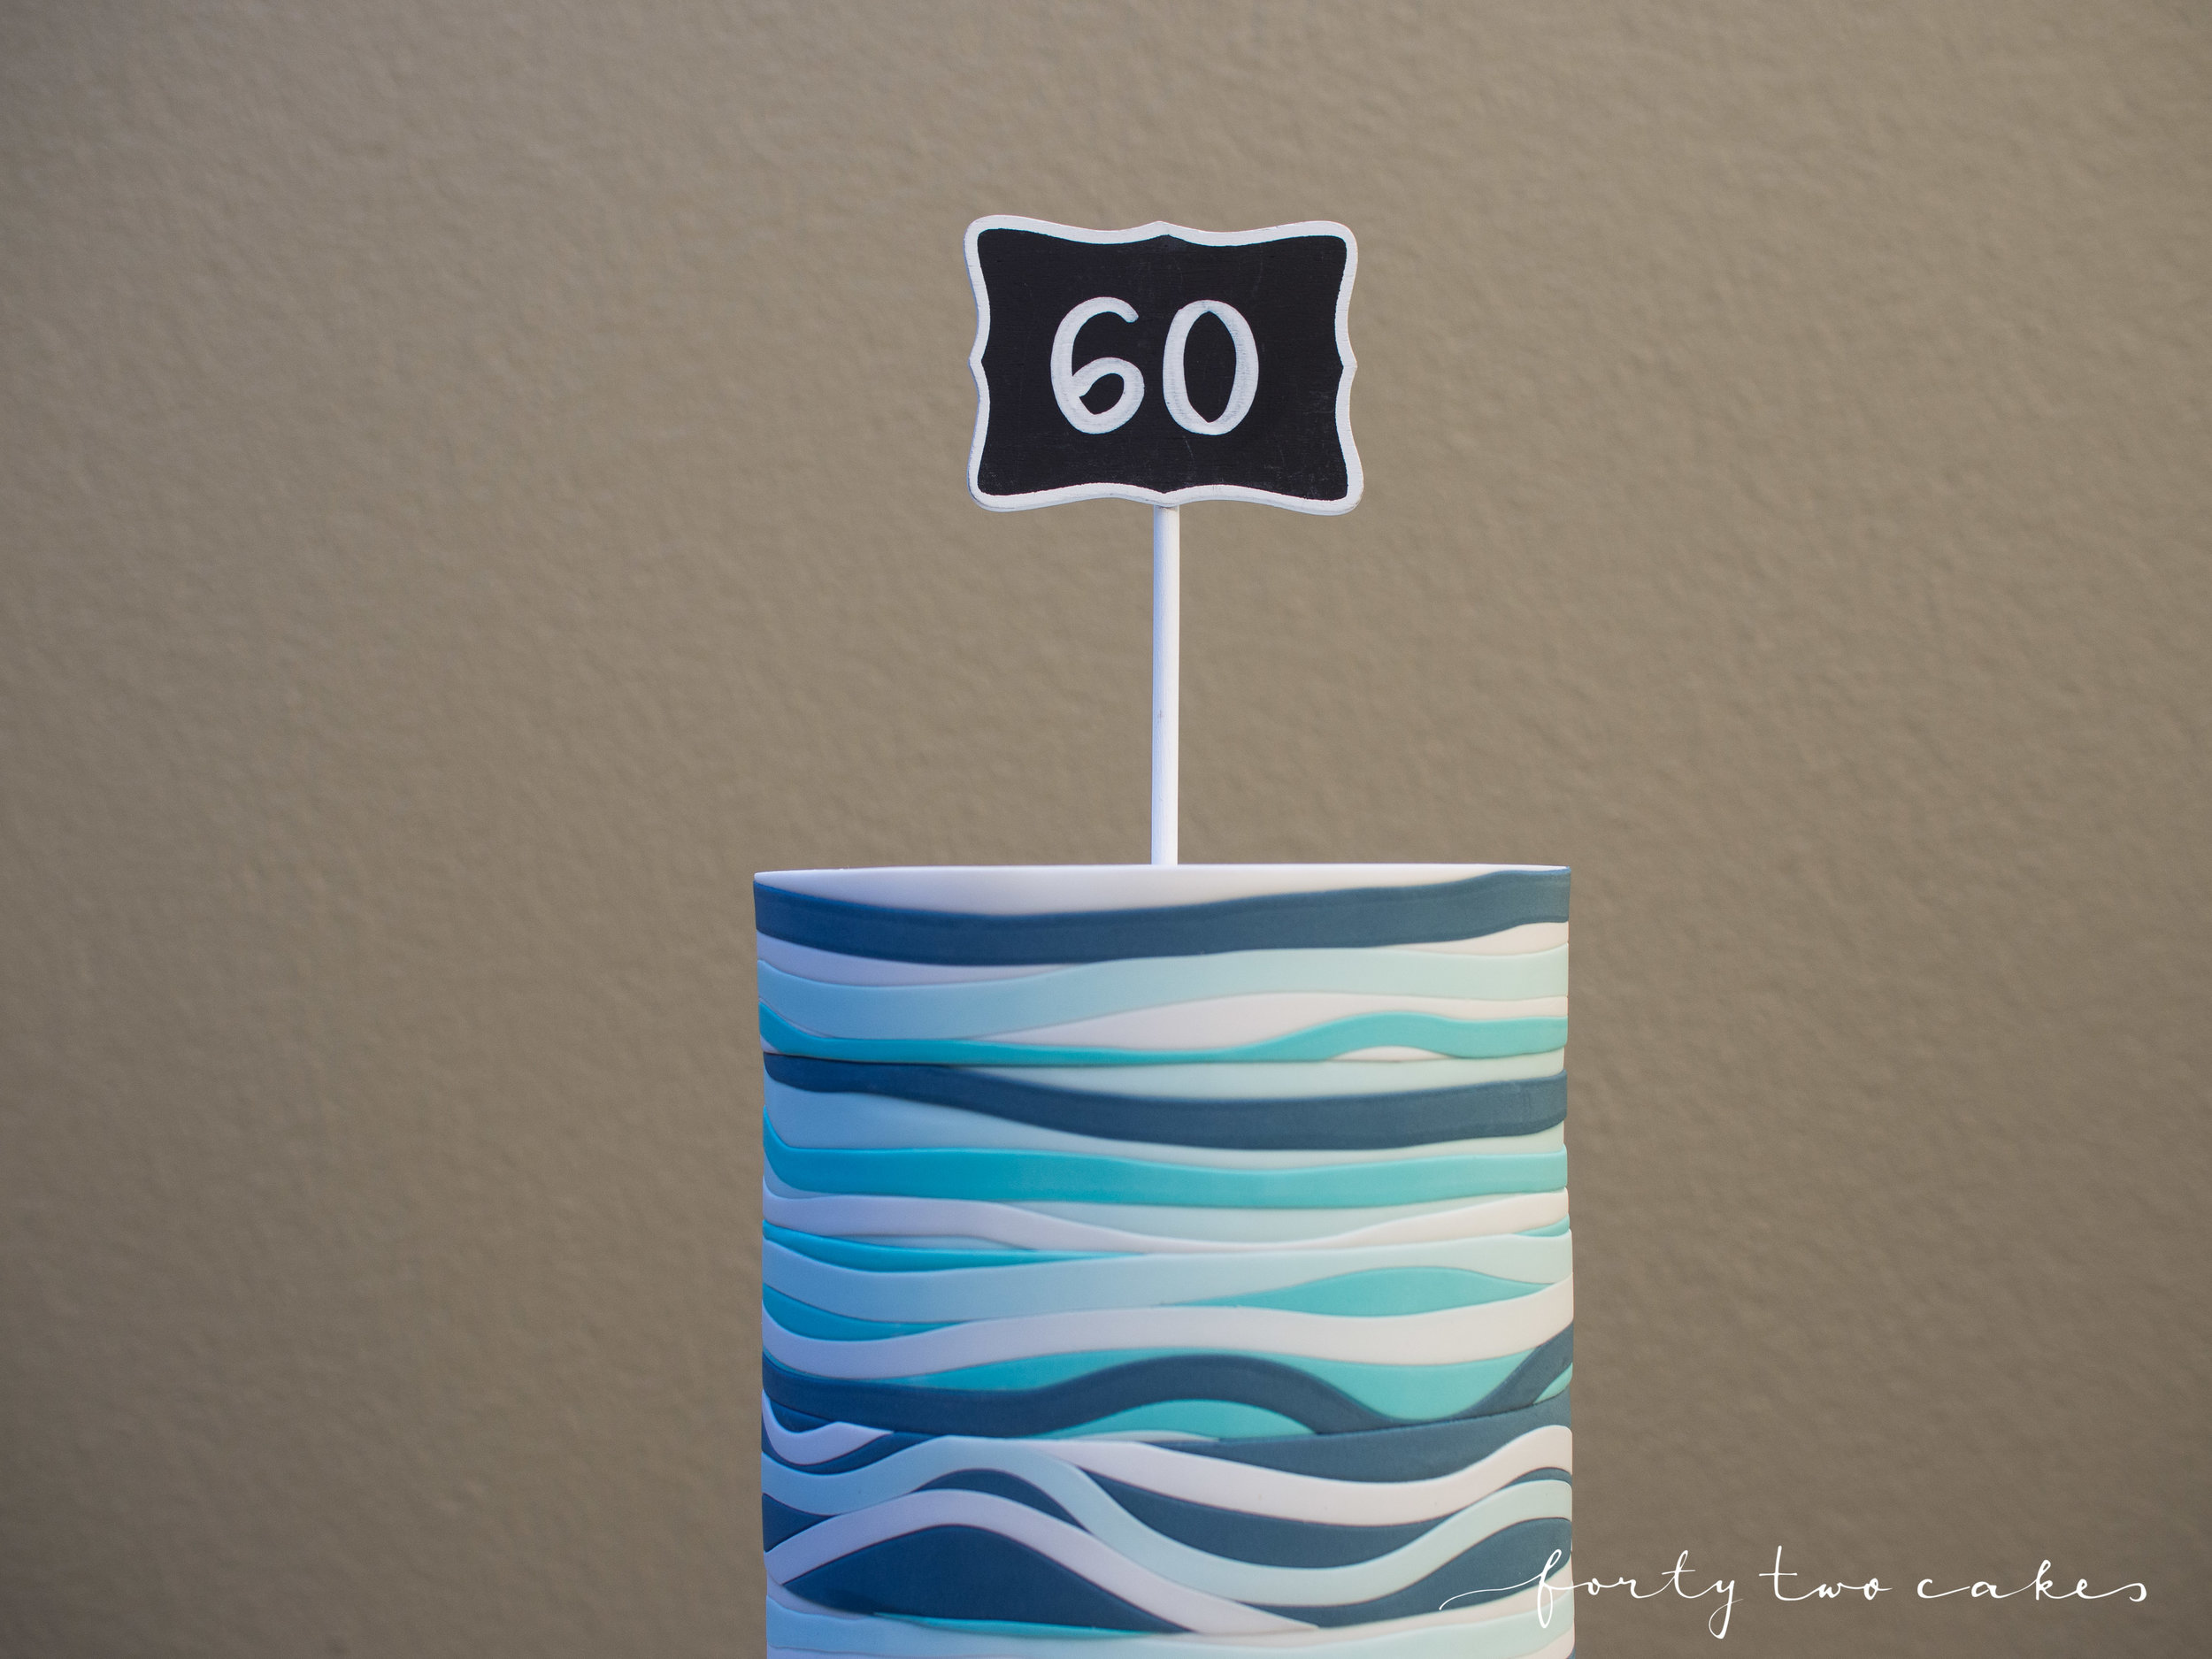 Forty-Two Cakes - Fondant-01-4.jpg